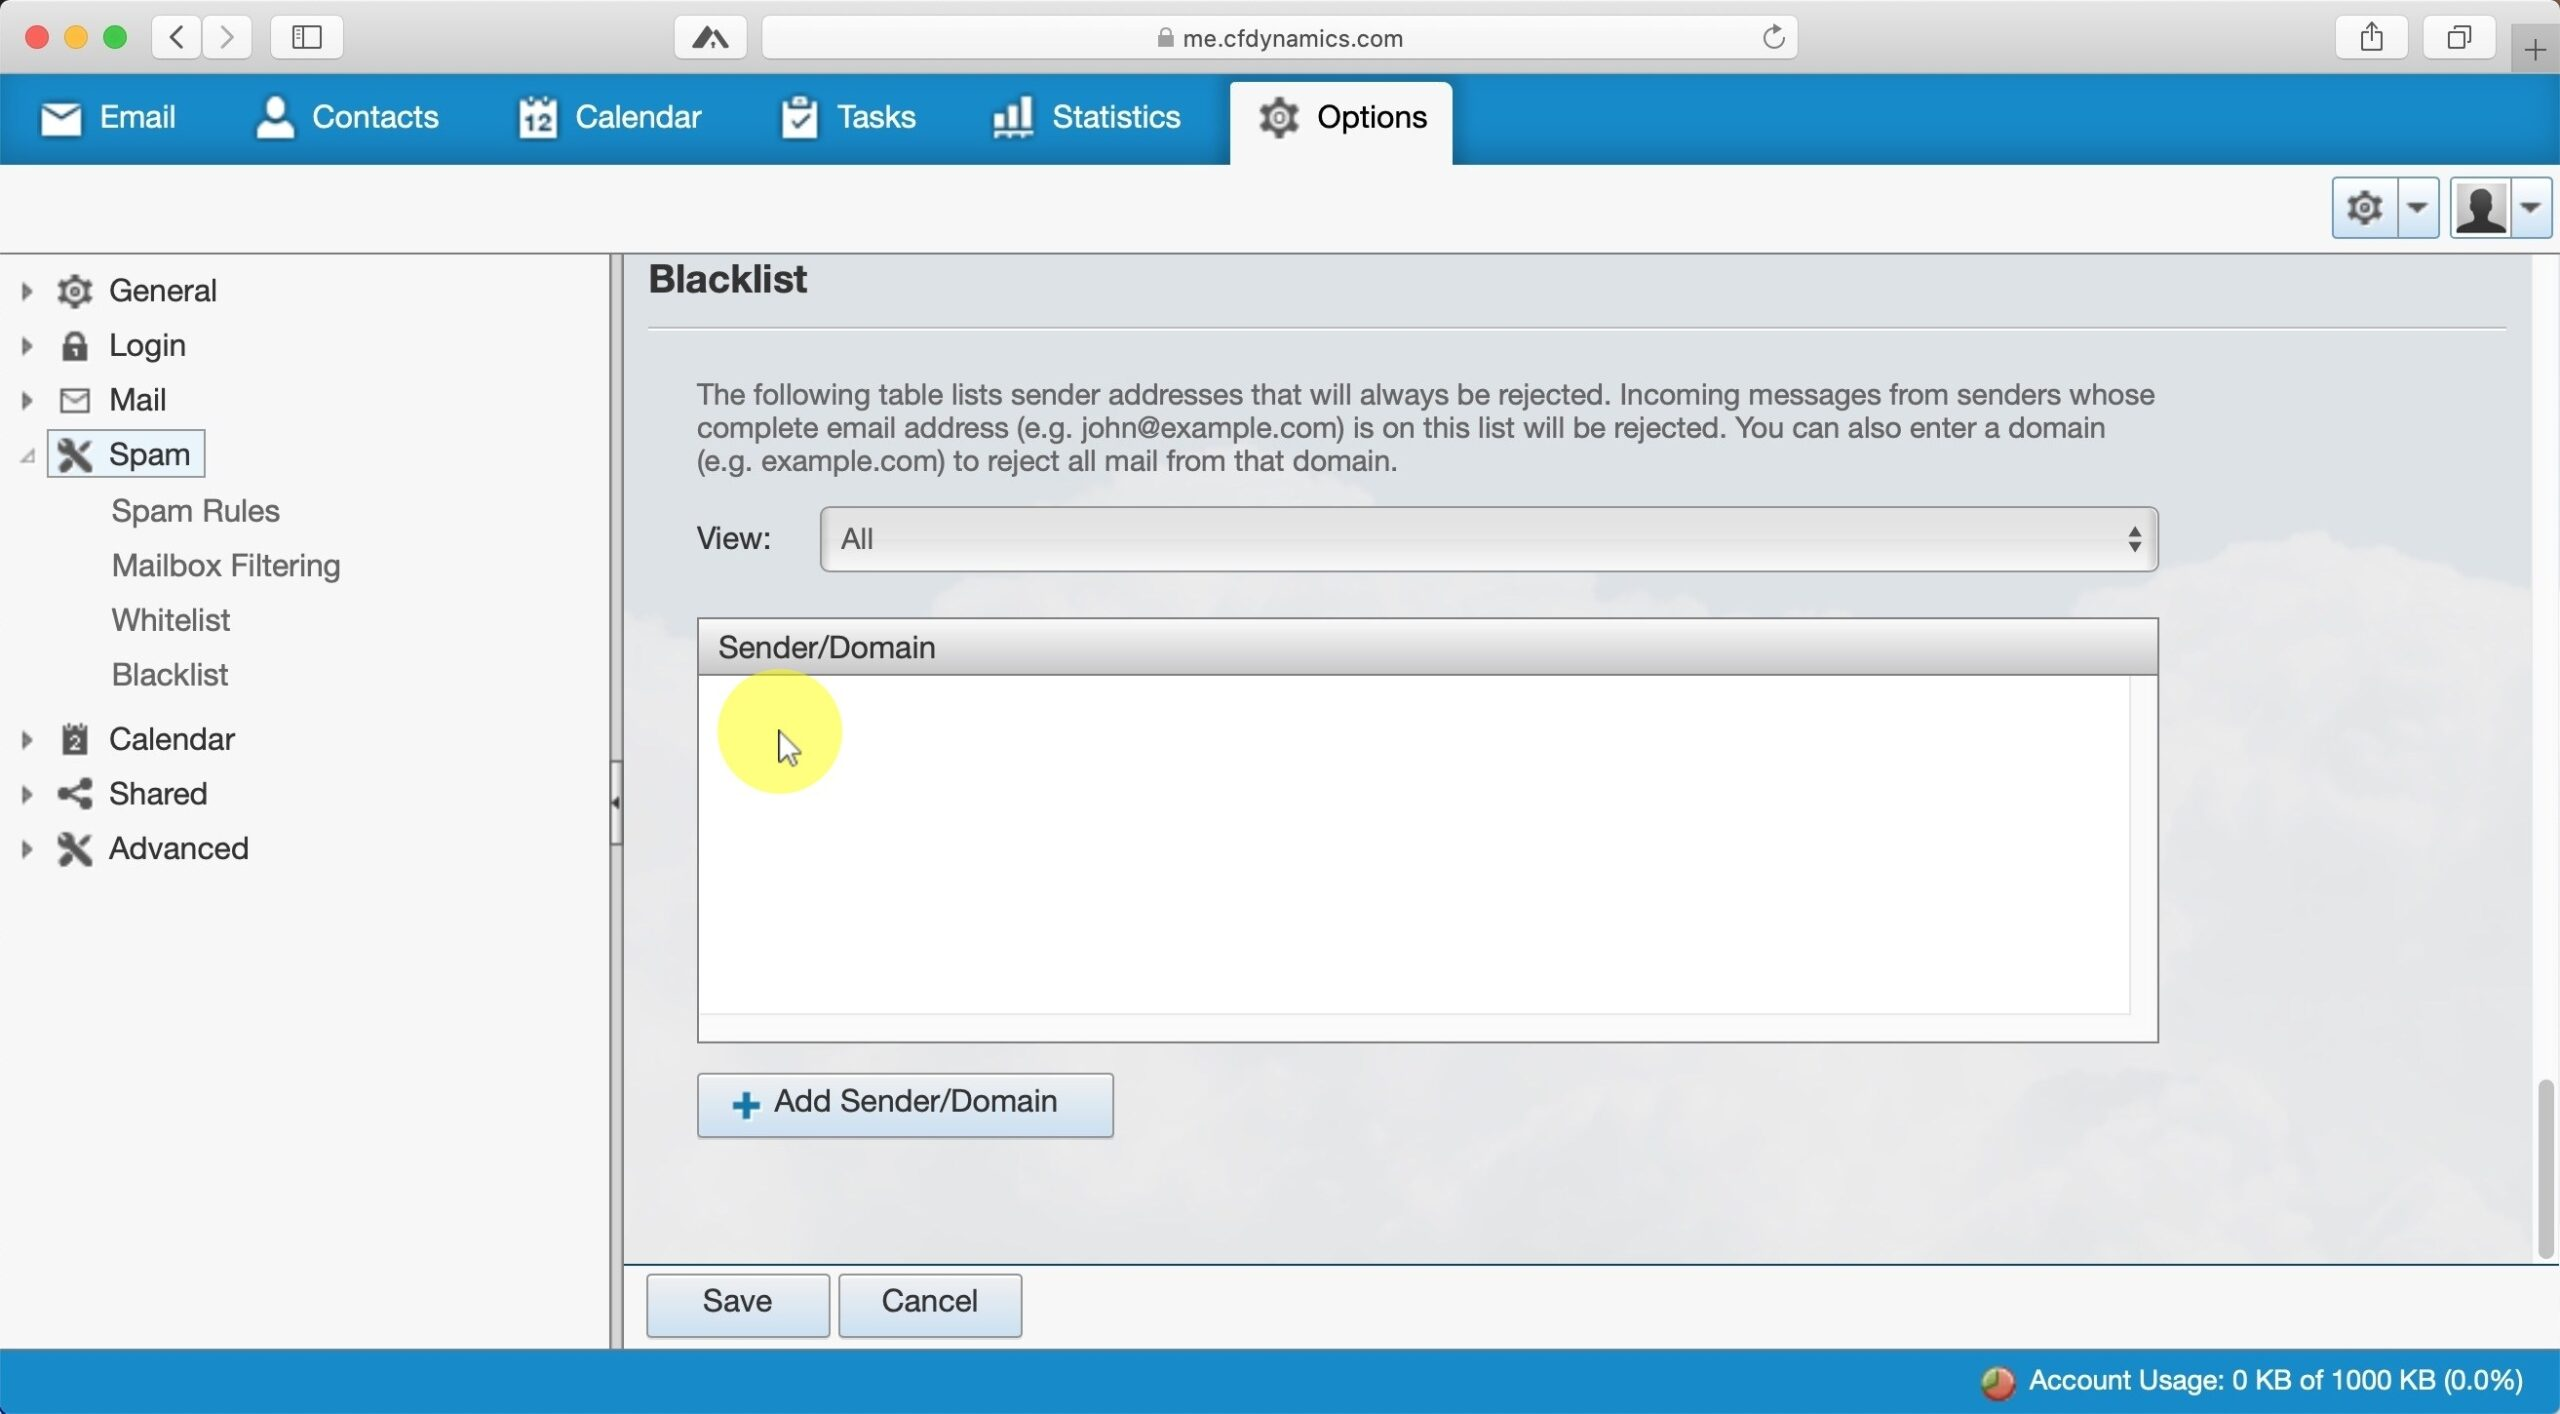 Blacklist Options Blacklist options work the same as the whitelist options described previously. However, any email received from a sender address or domain listed here will be rejected from the mail server. It will not be stored in your mailbox and will not be recoverable.